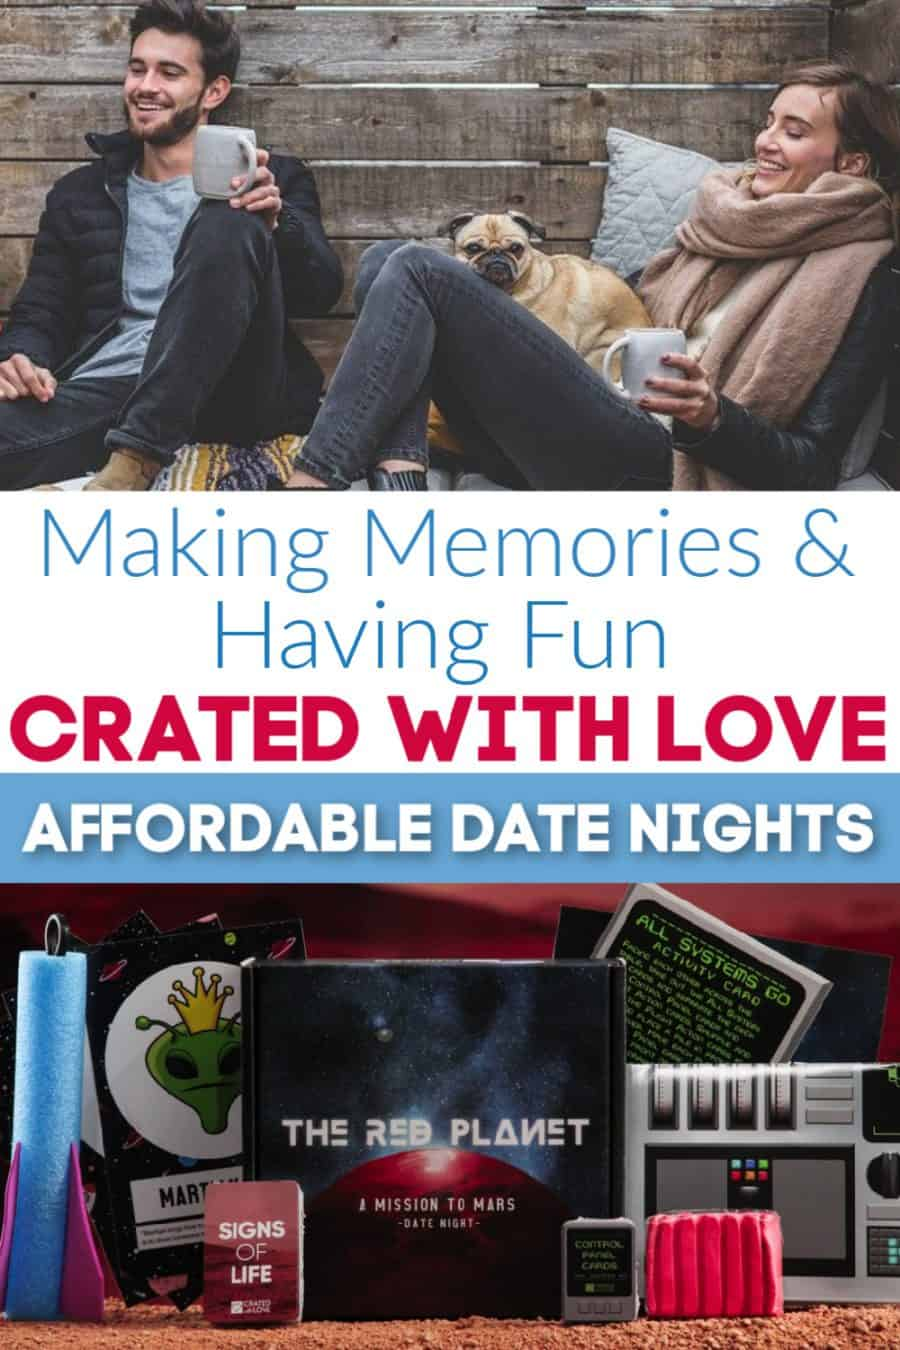 Affordable Date Nights With Crated With Love {+ Discount & BIG Giveaway!}